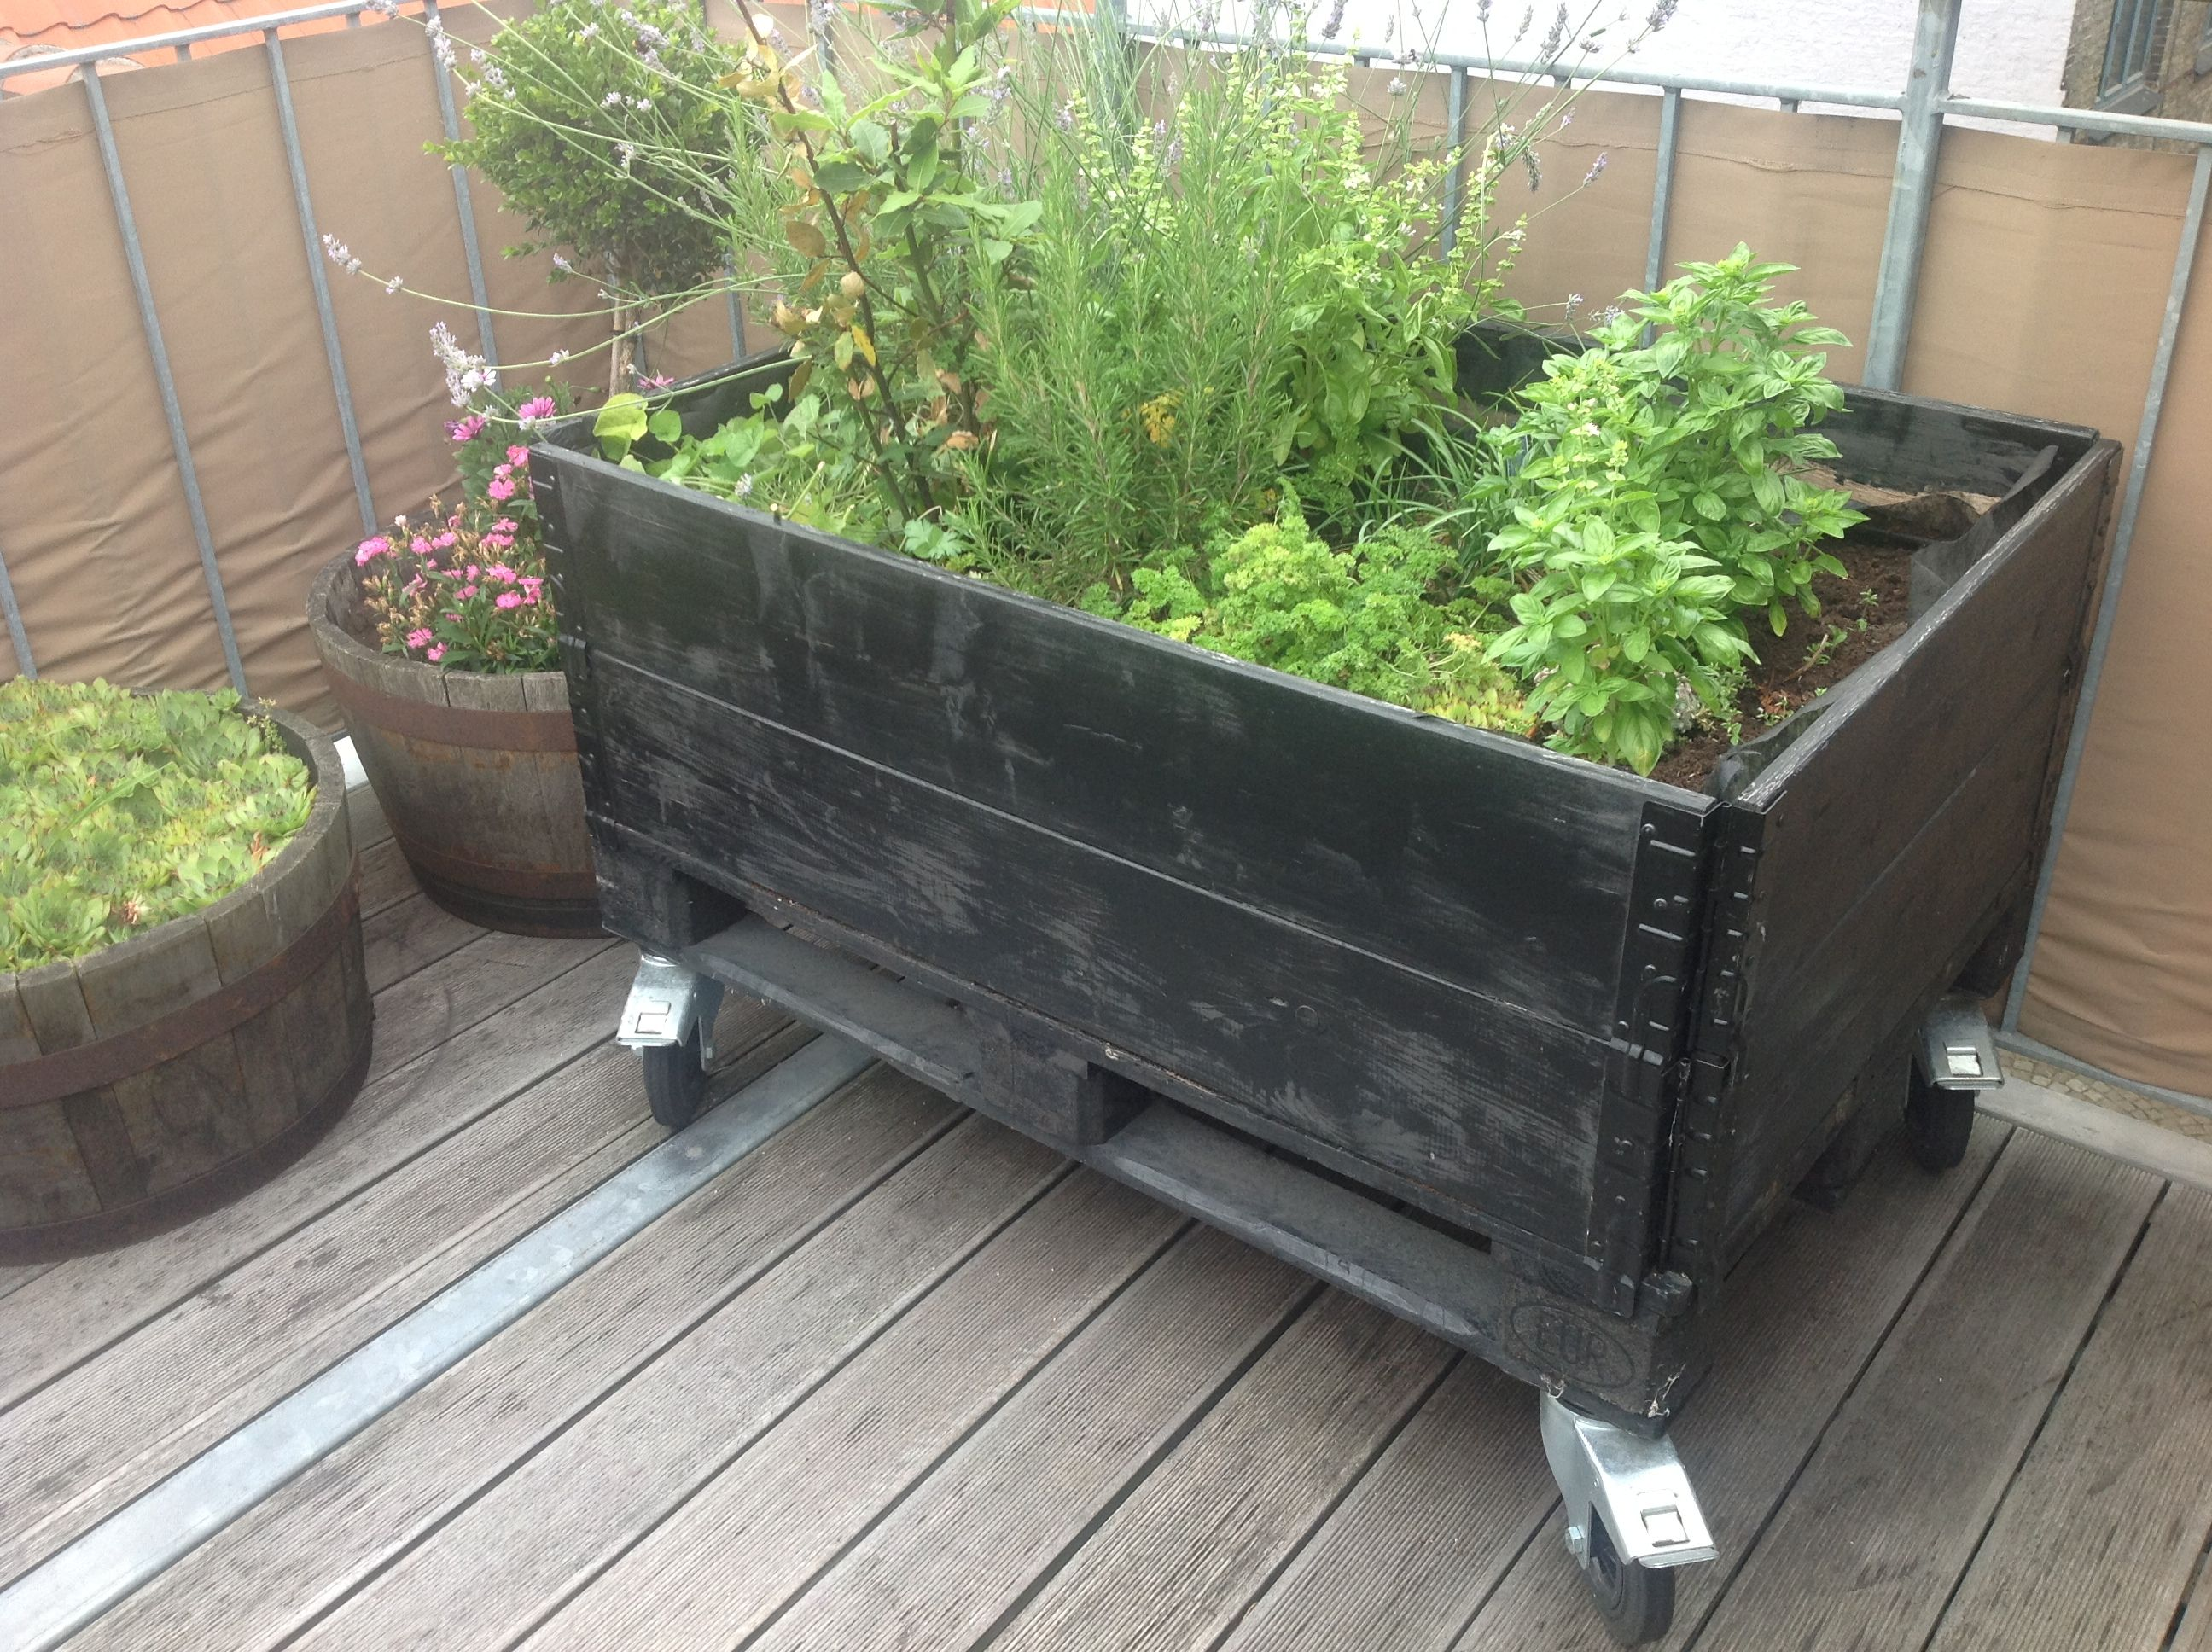 Self Watering Outdoor Planters Mobile Planter Box On Outside Deck Of Danish Apartment